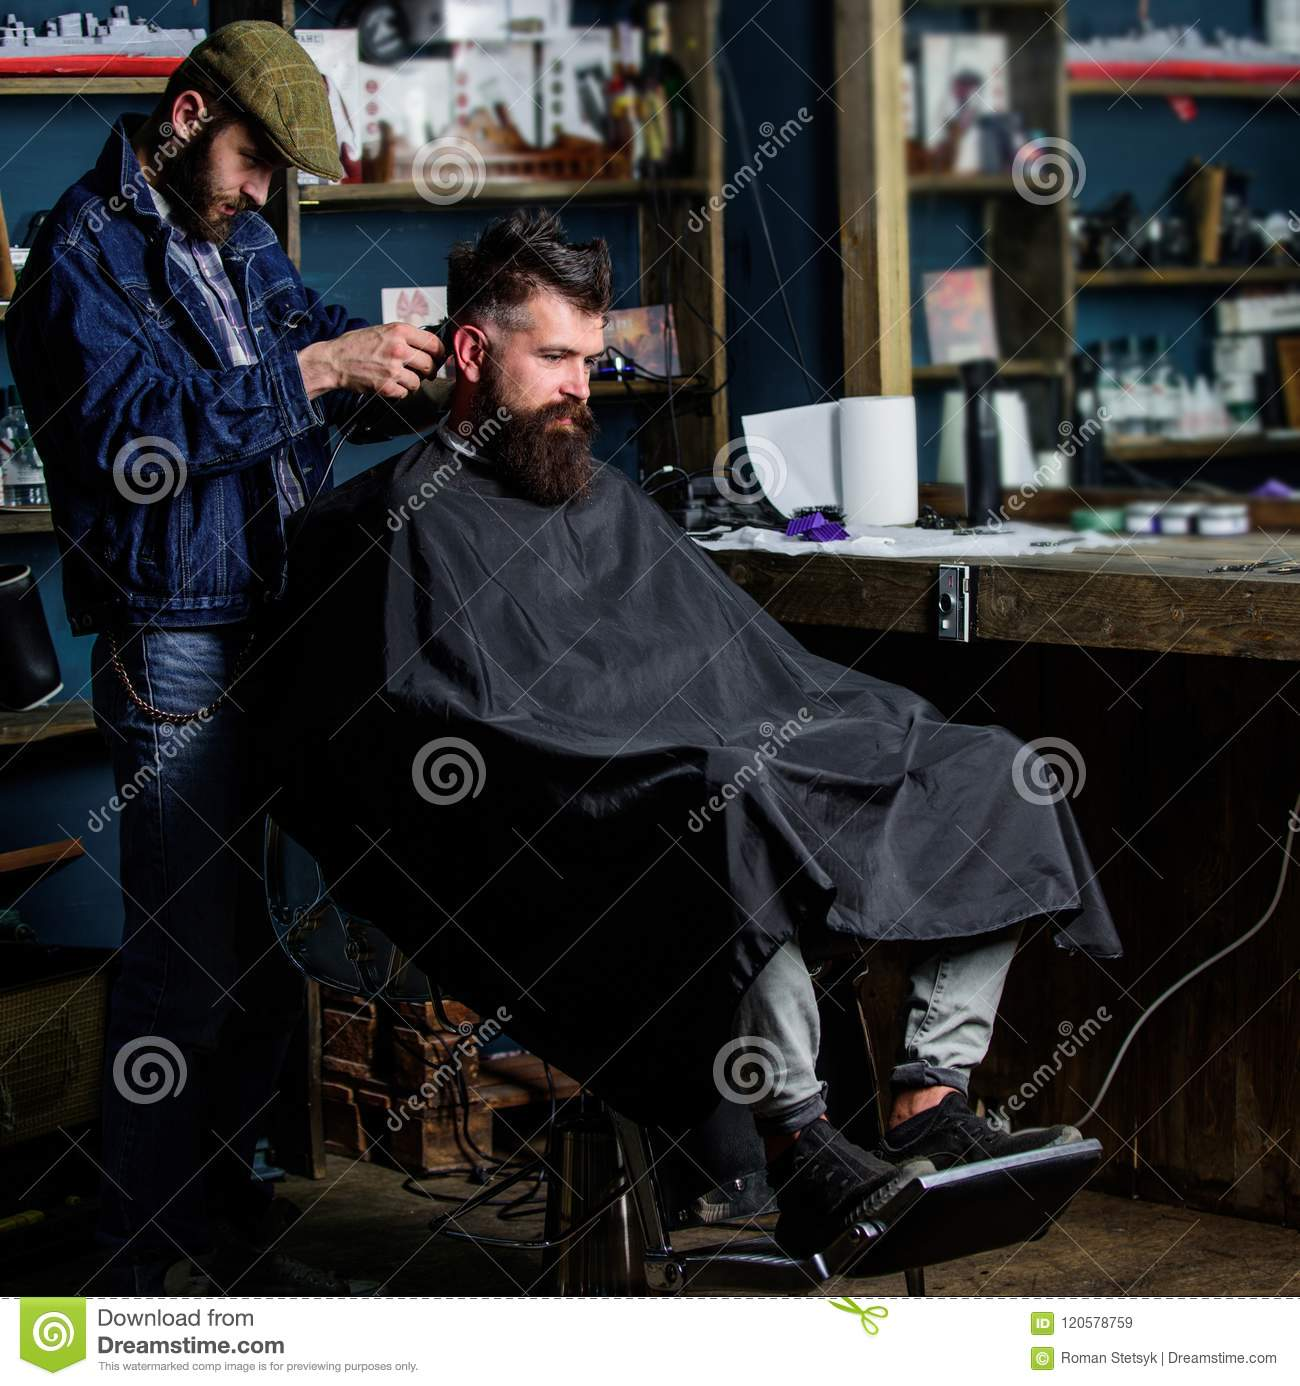 Barber with hair clipper works on haircut of bearded guy barbershop background. Hipster client getting haircut. Barber